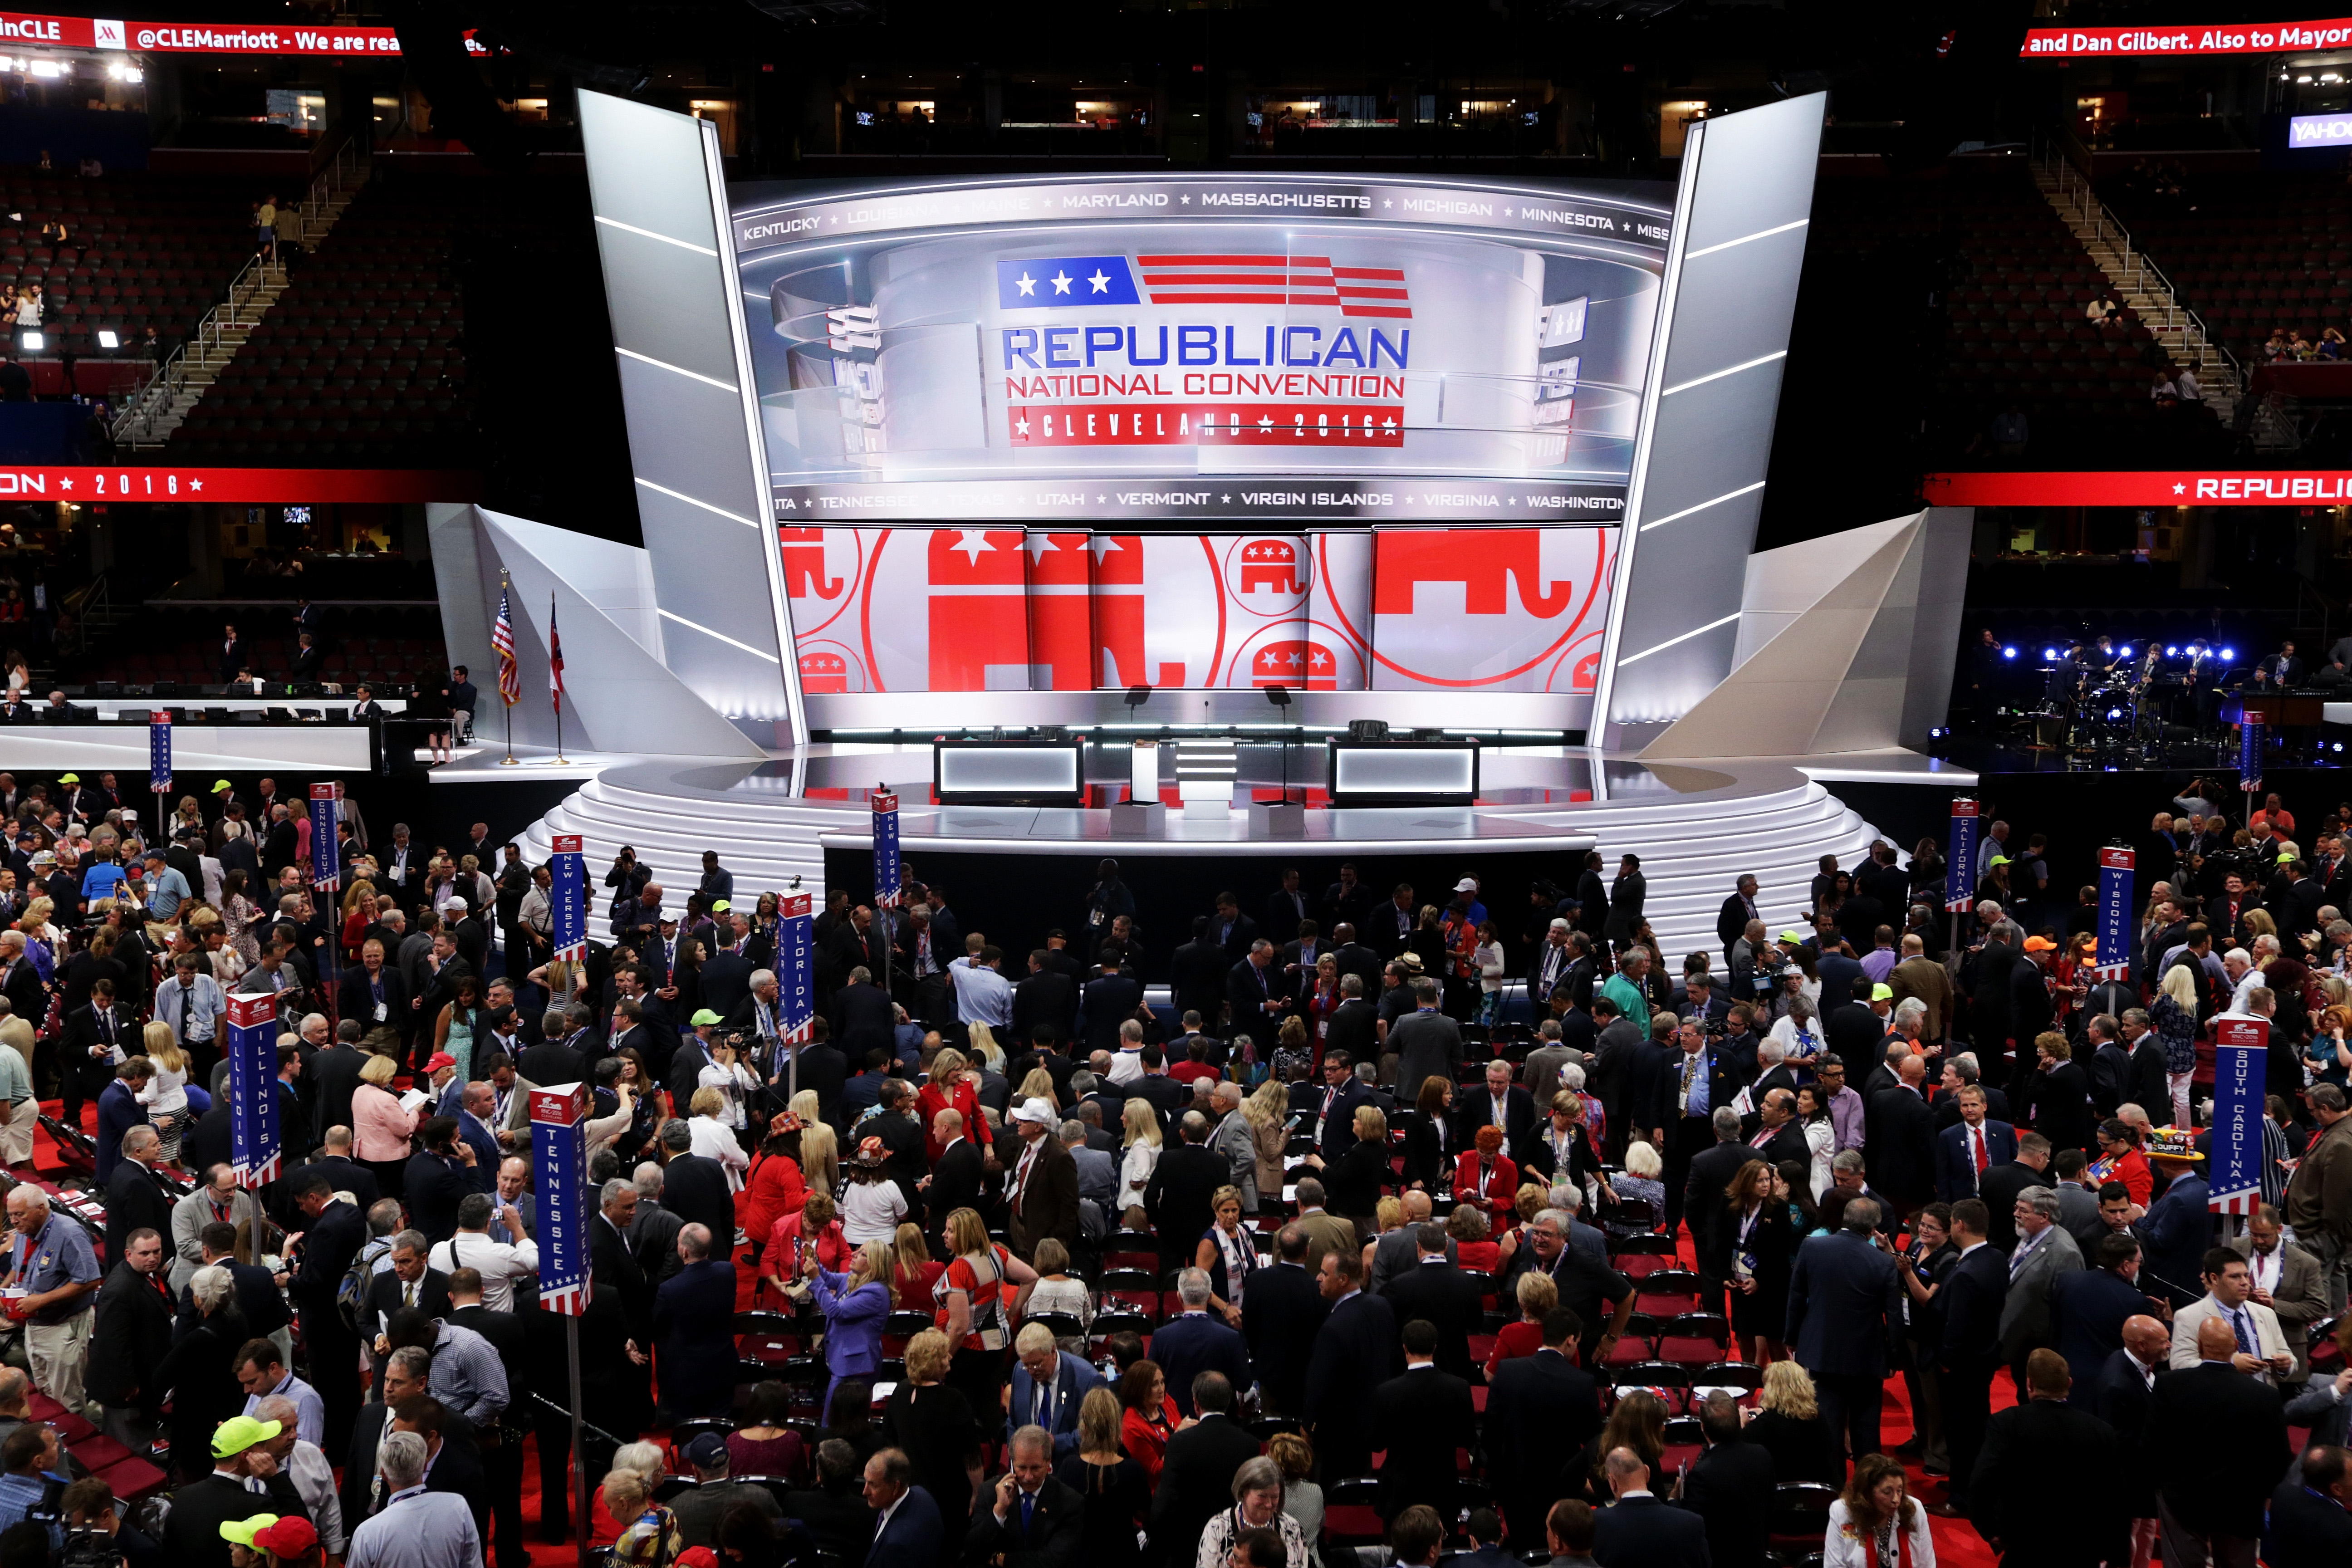 CLEVELAND, OH - JULY 18:  The stage is left empty after Republican National Committee Chairman Reince Priebus left the stage during protests on the floor on the first day of the Republican National Convention on July 18, 2016 at the Quicken Loans Arena in Cleveland, Ohio. An estimated 50,000 people are expected in Cleveland, including hundreds of protesters and members of the media. The four-day Republican National Convention kicks off on July 18.